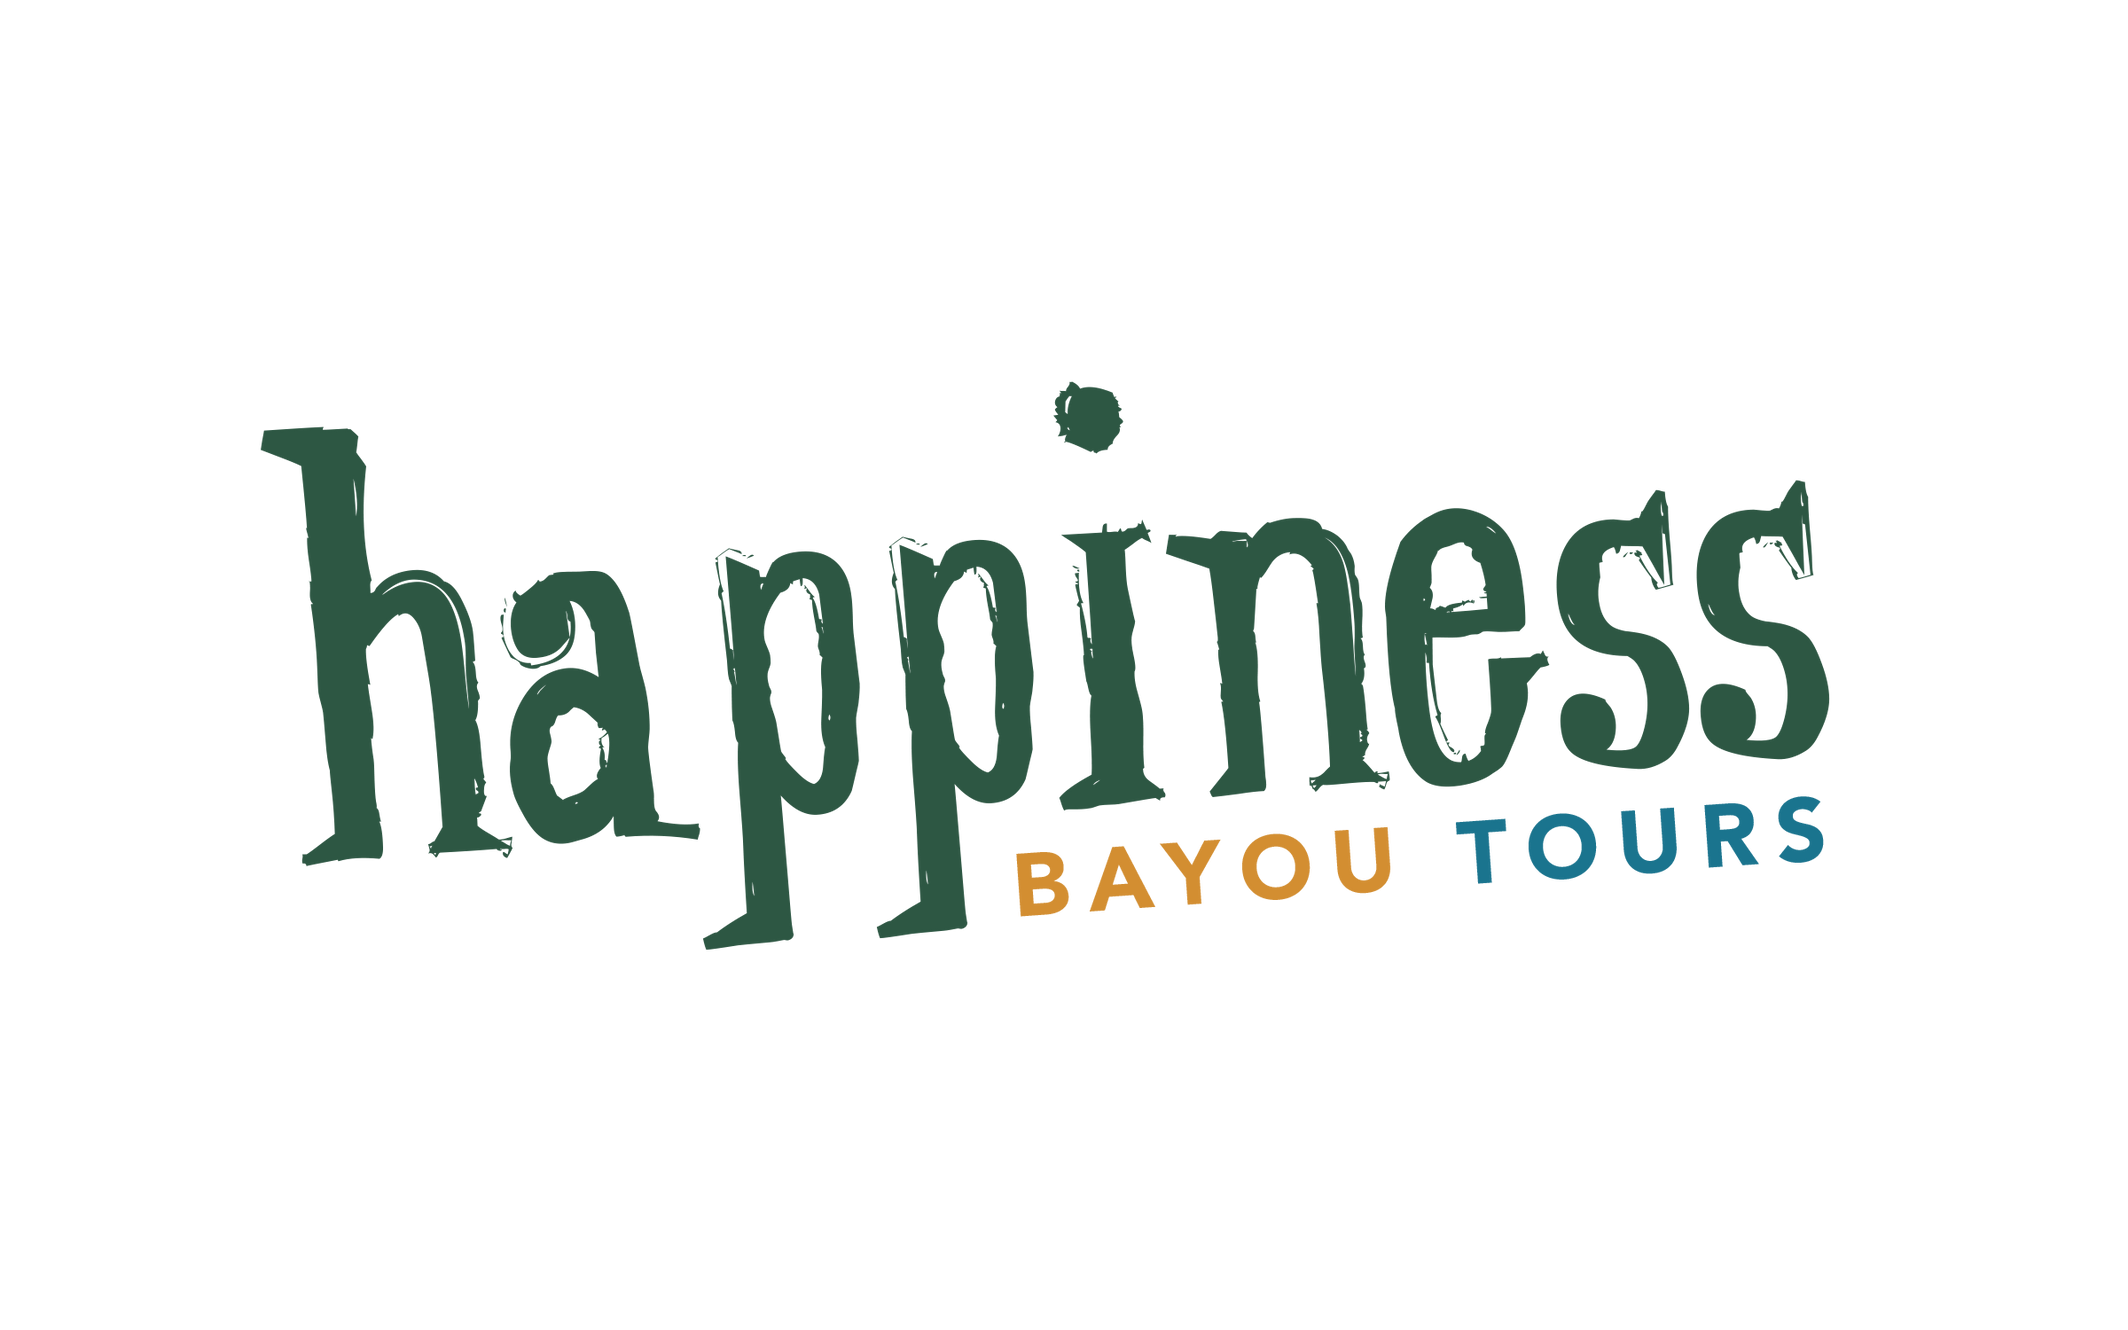 Bayou Experiences | New Orleans | Happiness Bayou Tours